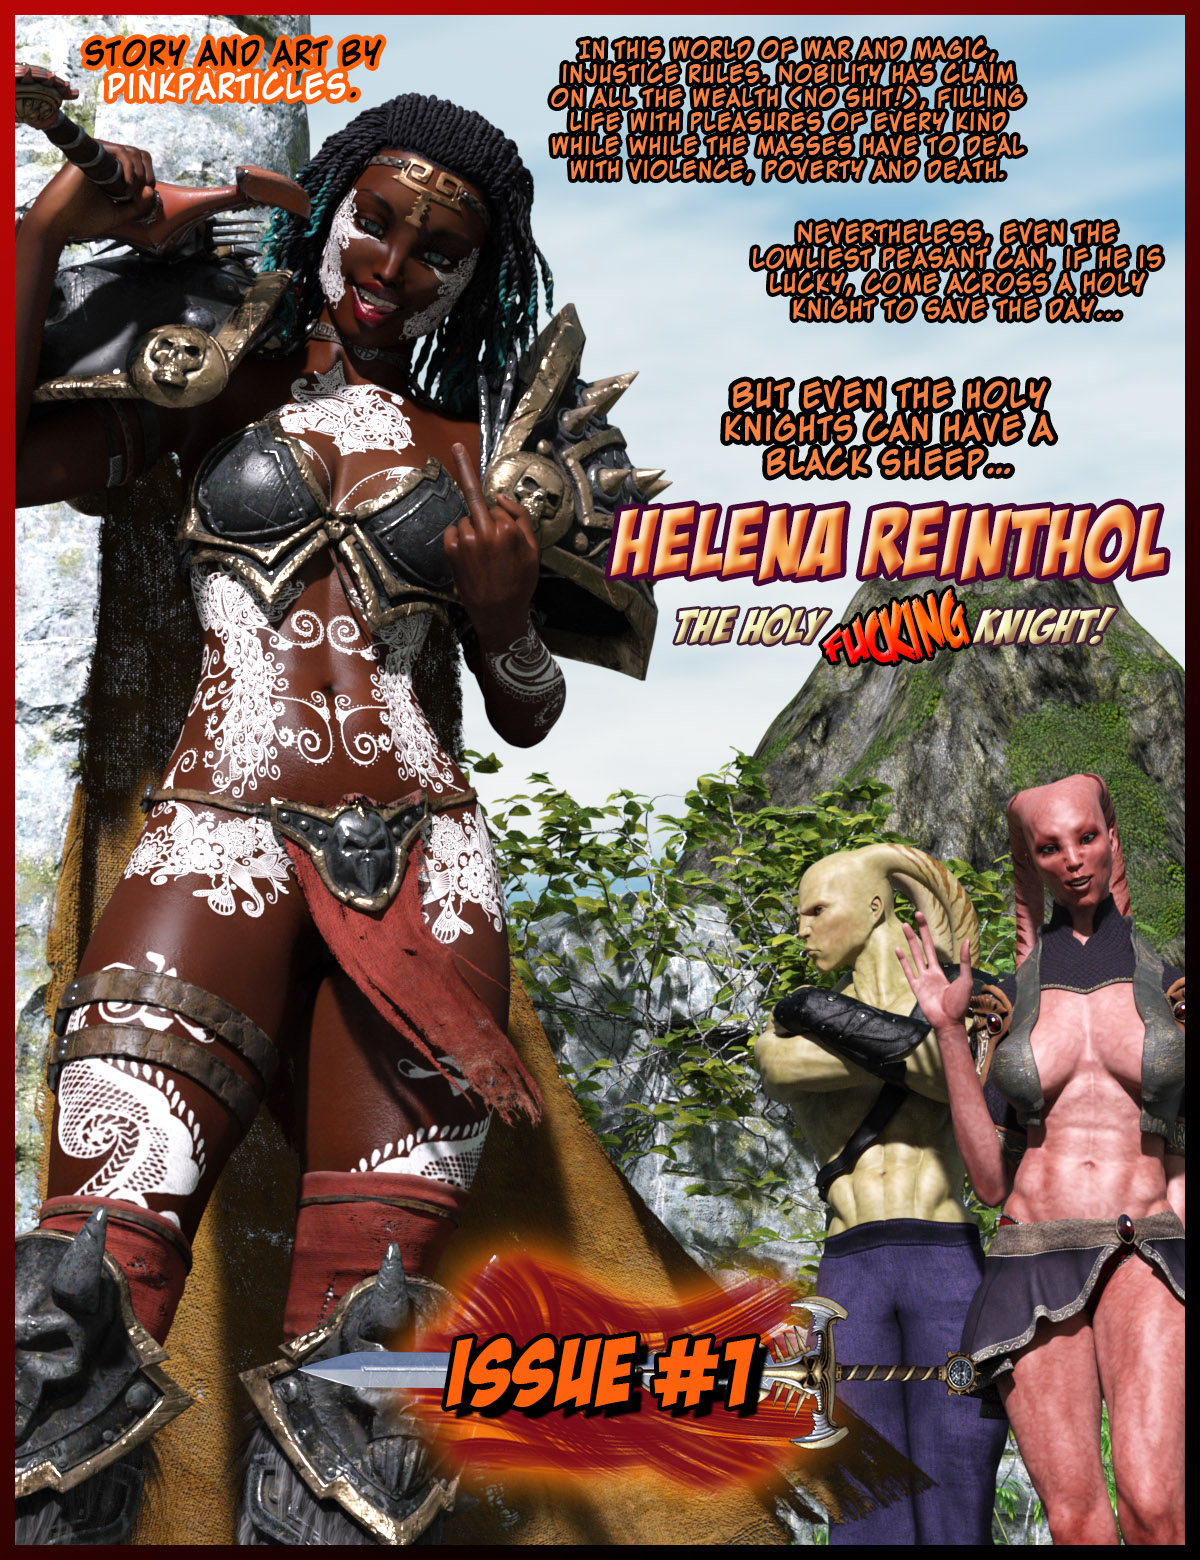 Helena Reinthol's Adventures (33 Pages)